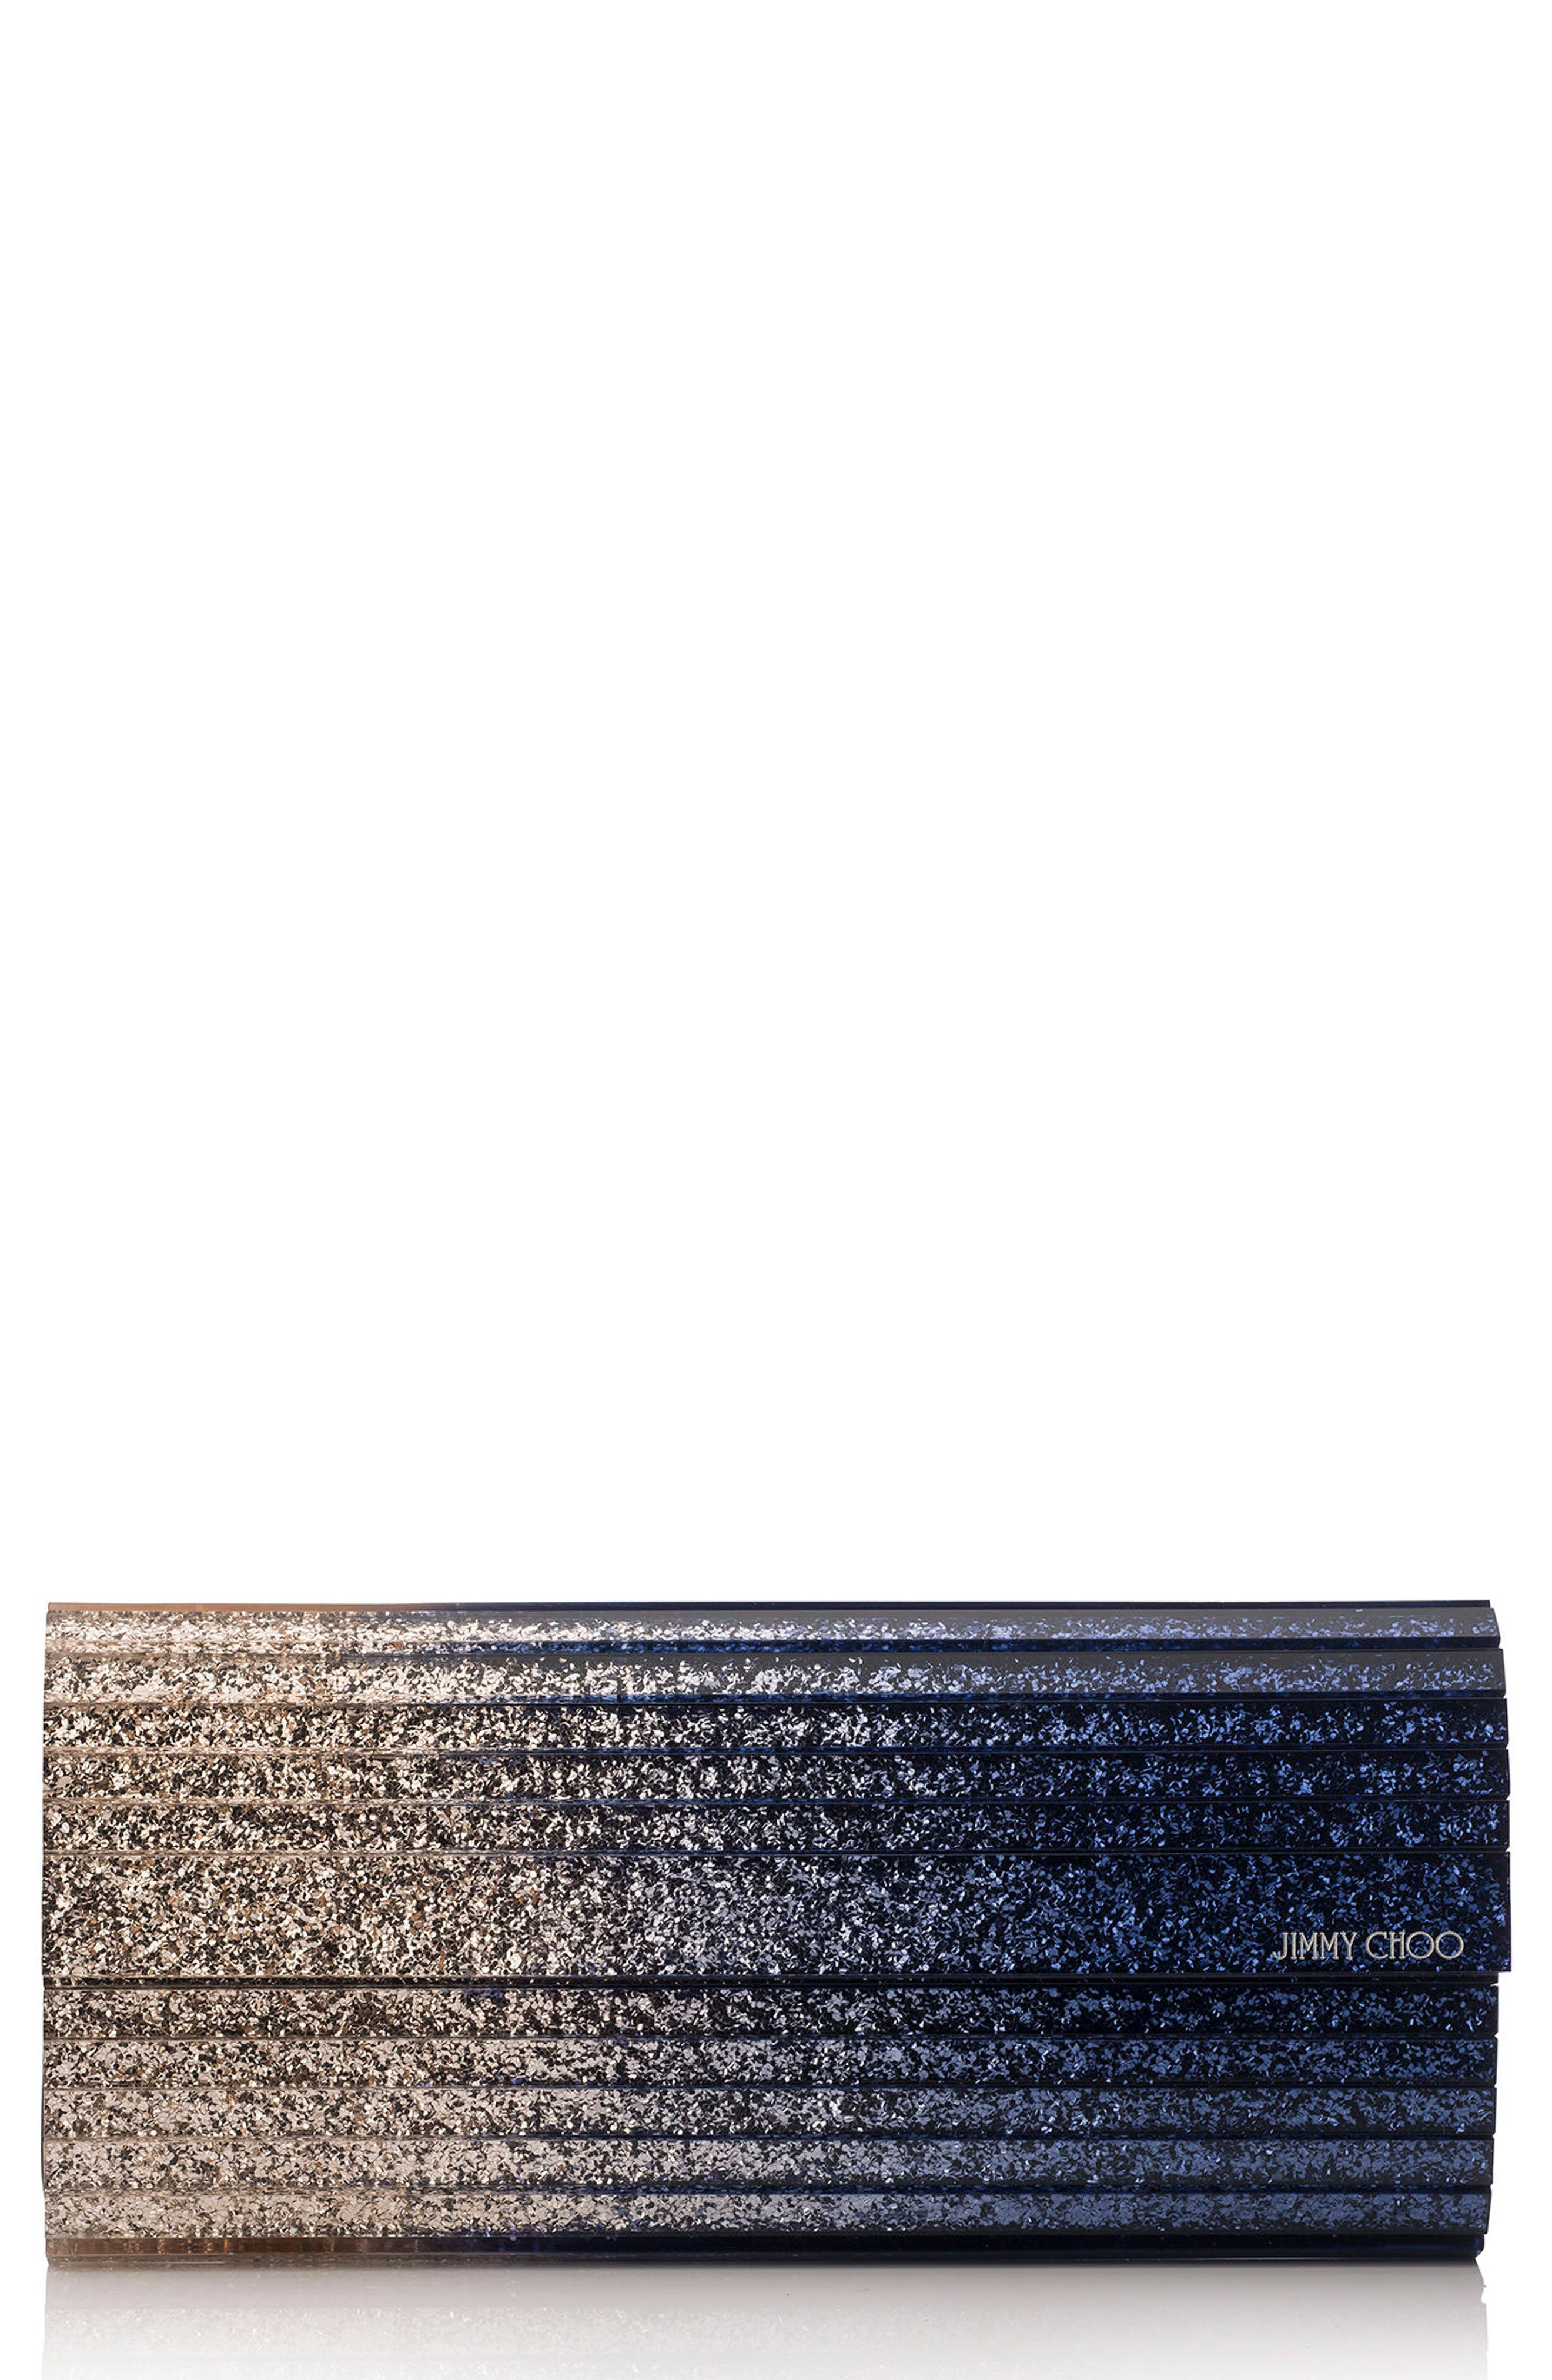 'Sweetie' Clutch,                         Main,                         color, 041